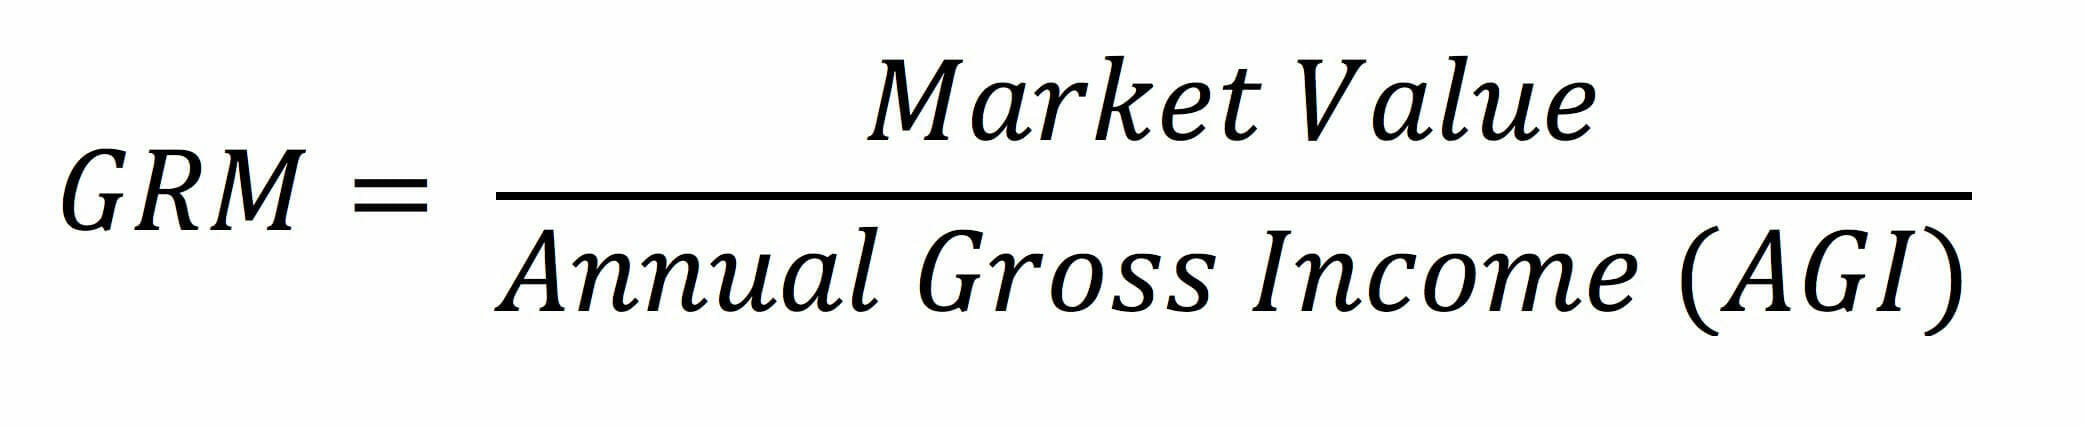 GRM is Market Value divided by Annual Gross Income (AGI).